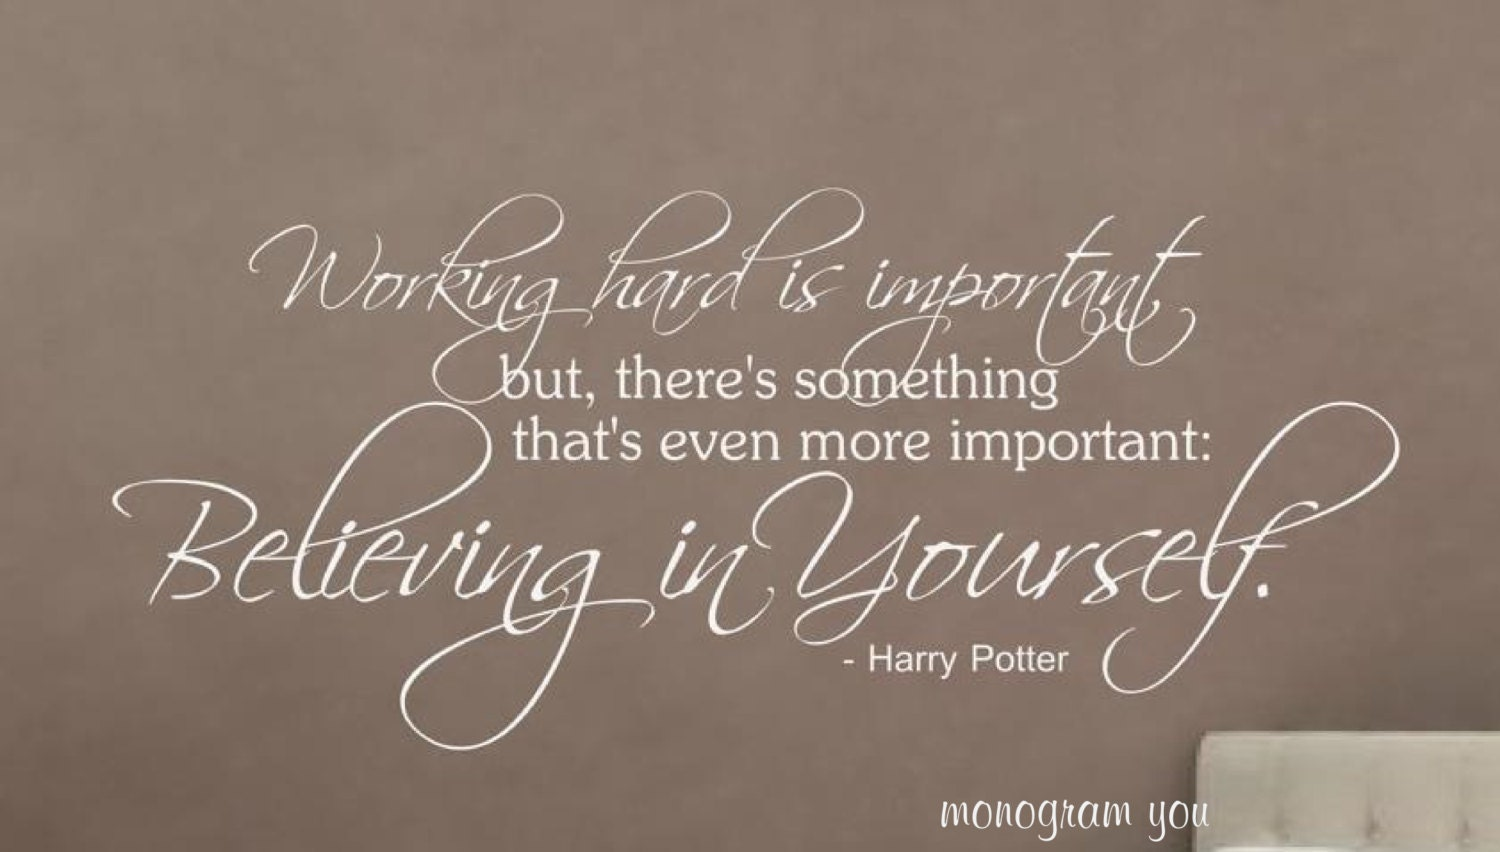 Harry Potter Quotes and Sayings - Great Life Quotes